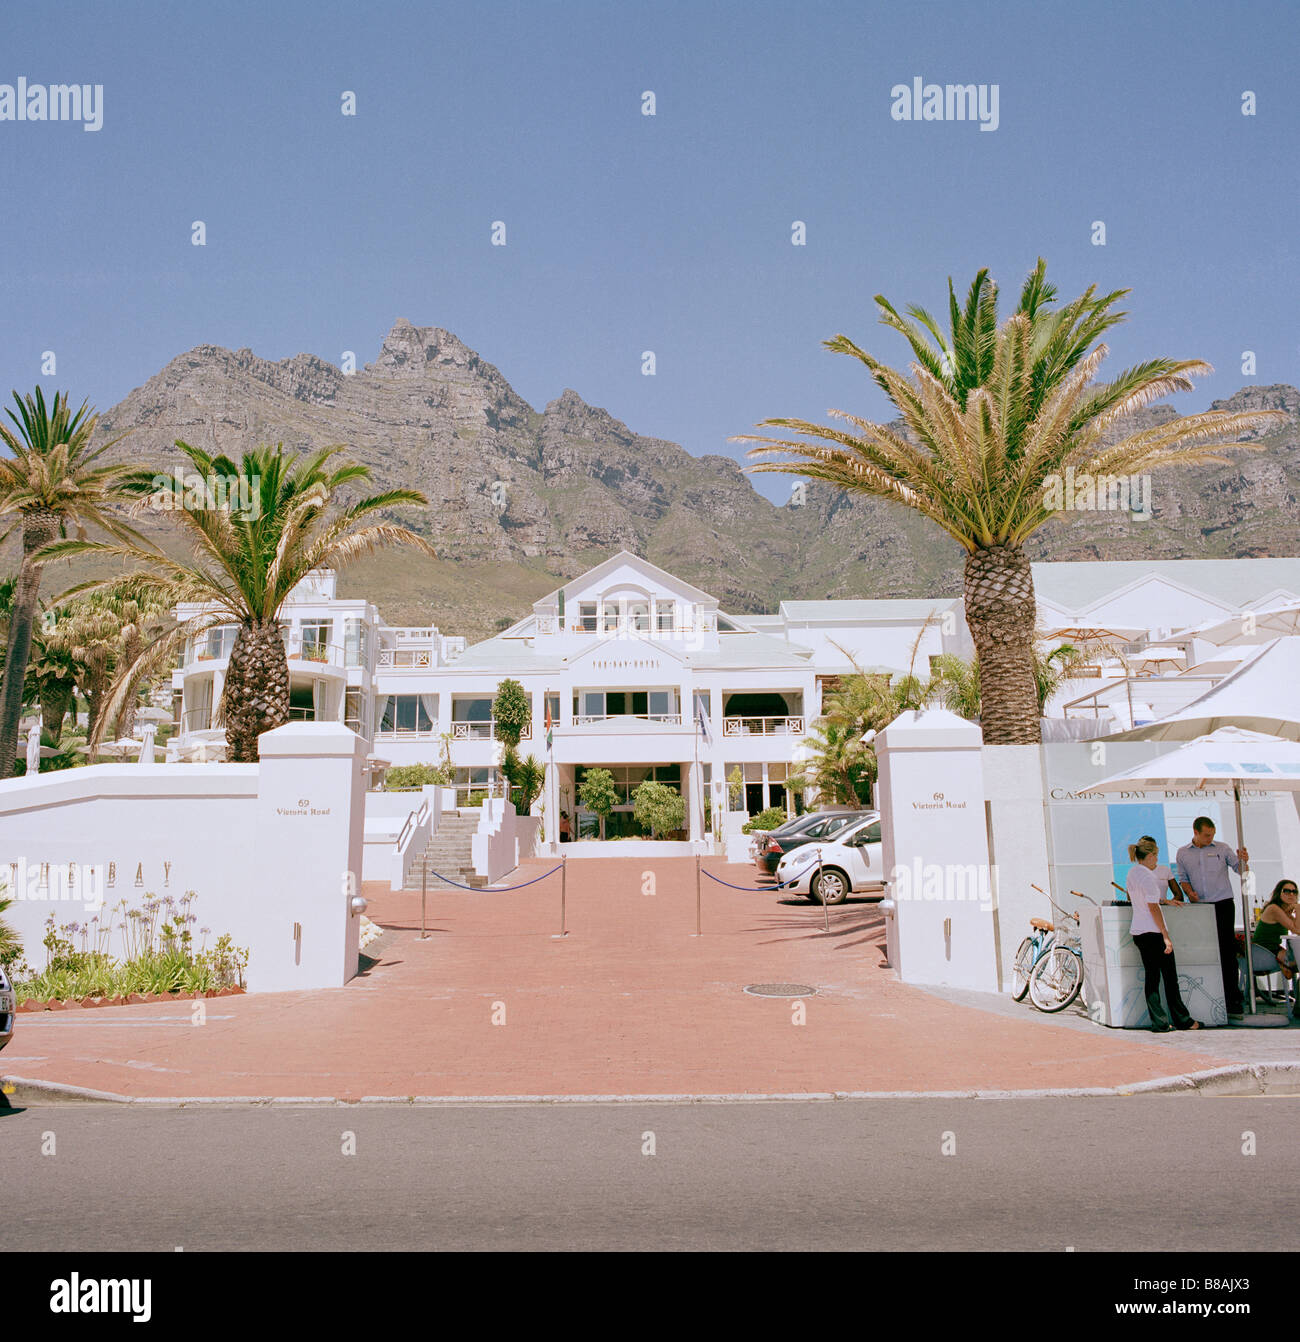 Camps Bay Hotel at Camps Bay in Cape Town in South Africa in Sub Saharan Africa. Tourism Tourist Holiday Vacation - Stock Image